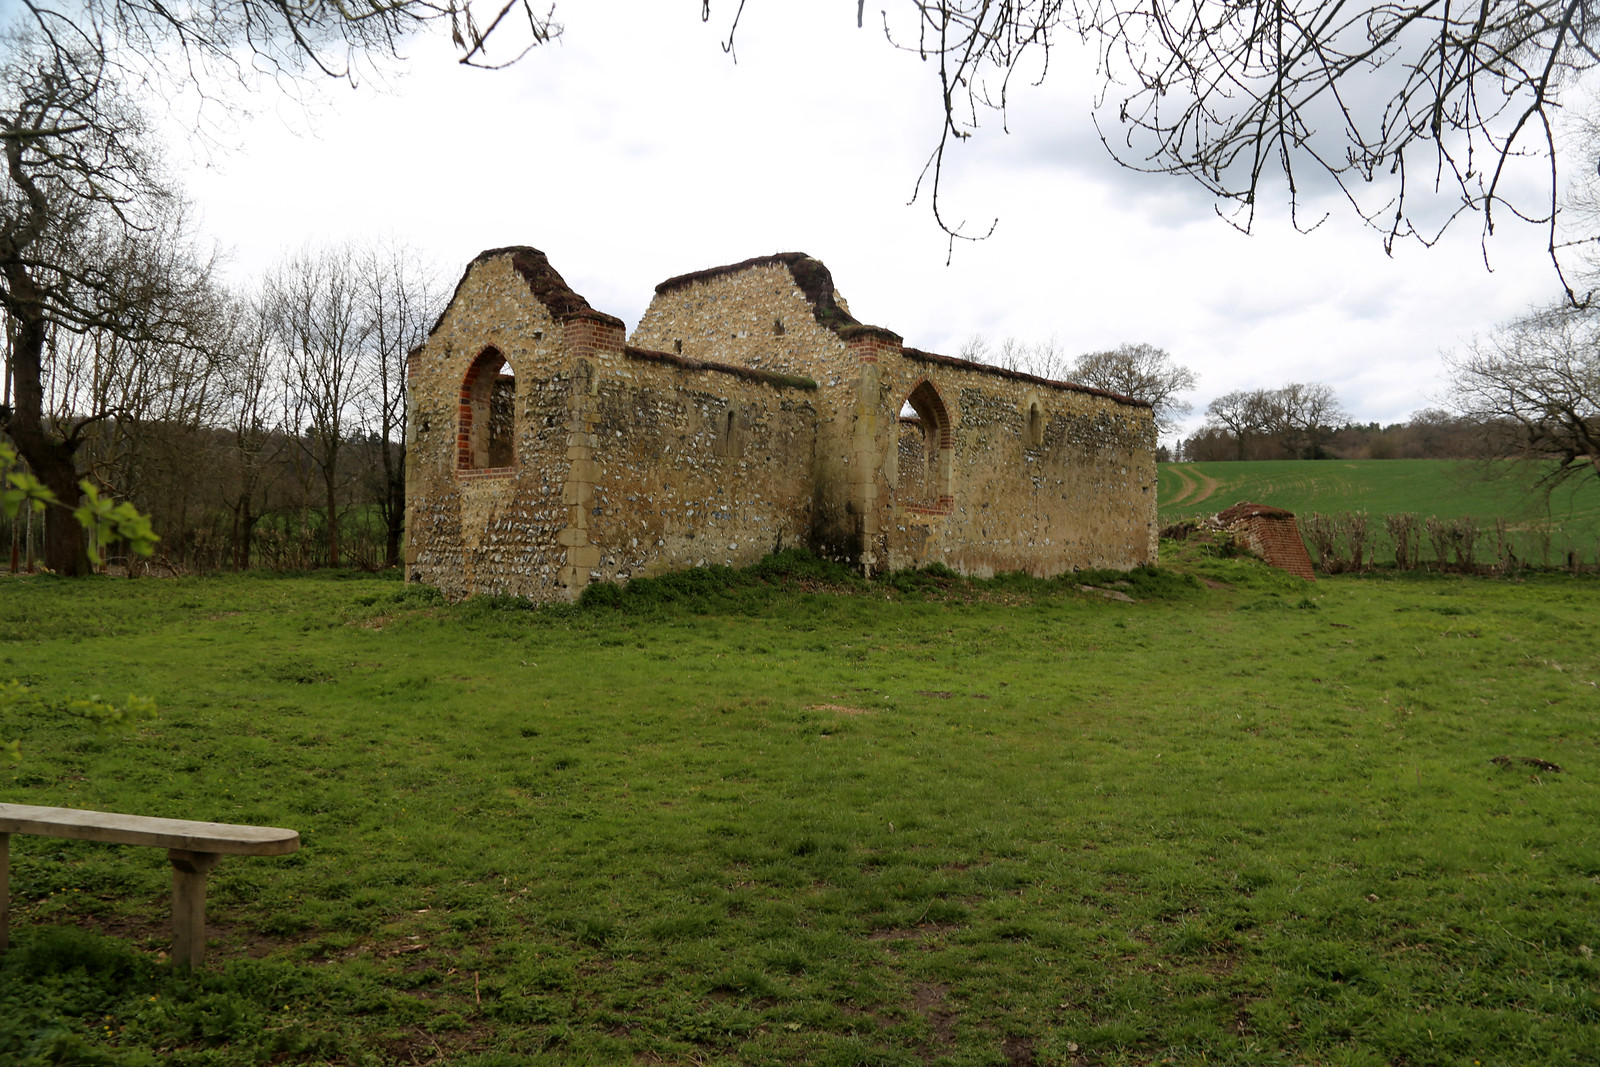 Remains of St James Church near Bix